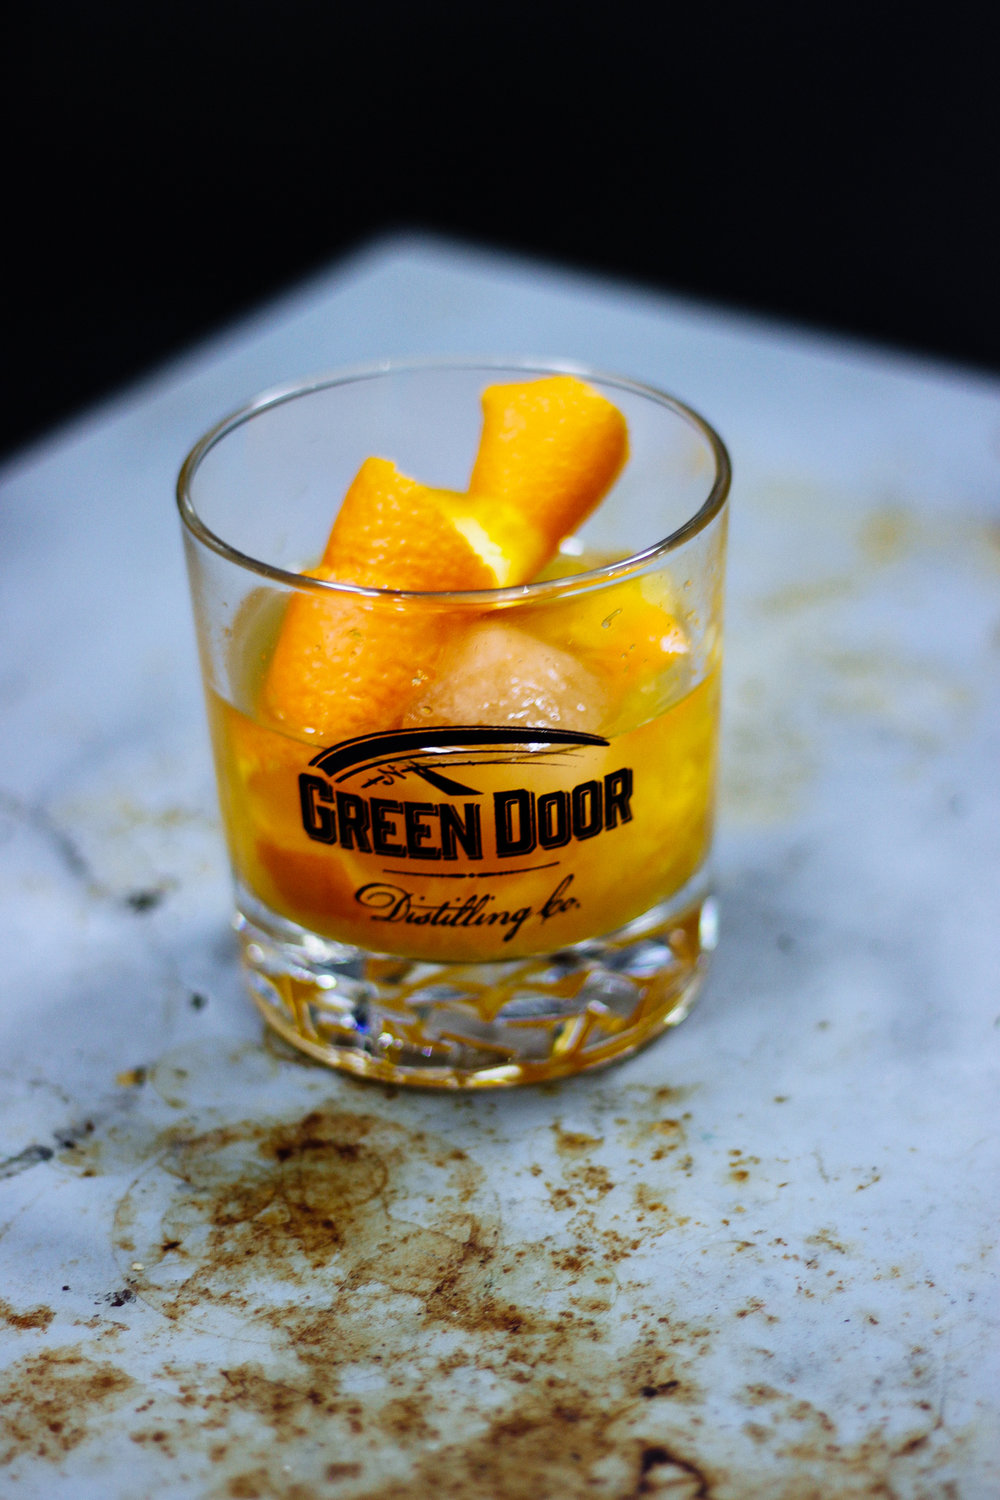 green door distilling co-16.jpg